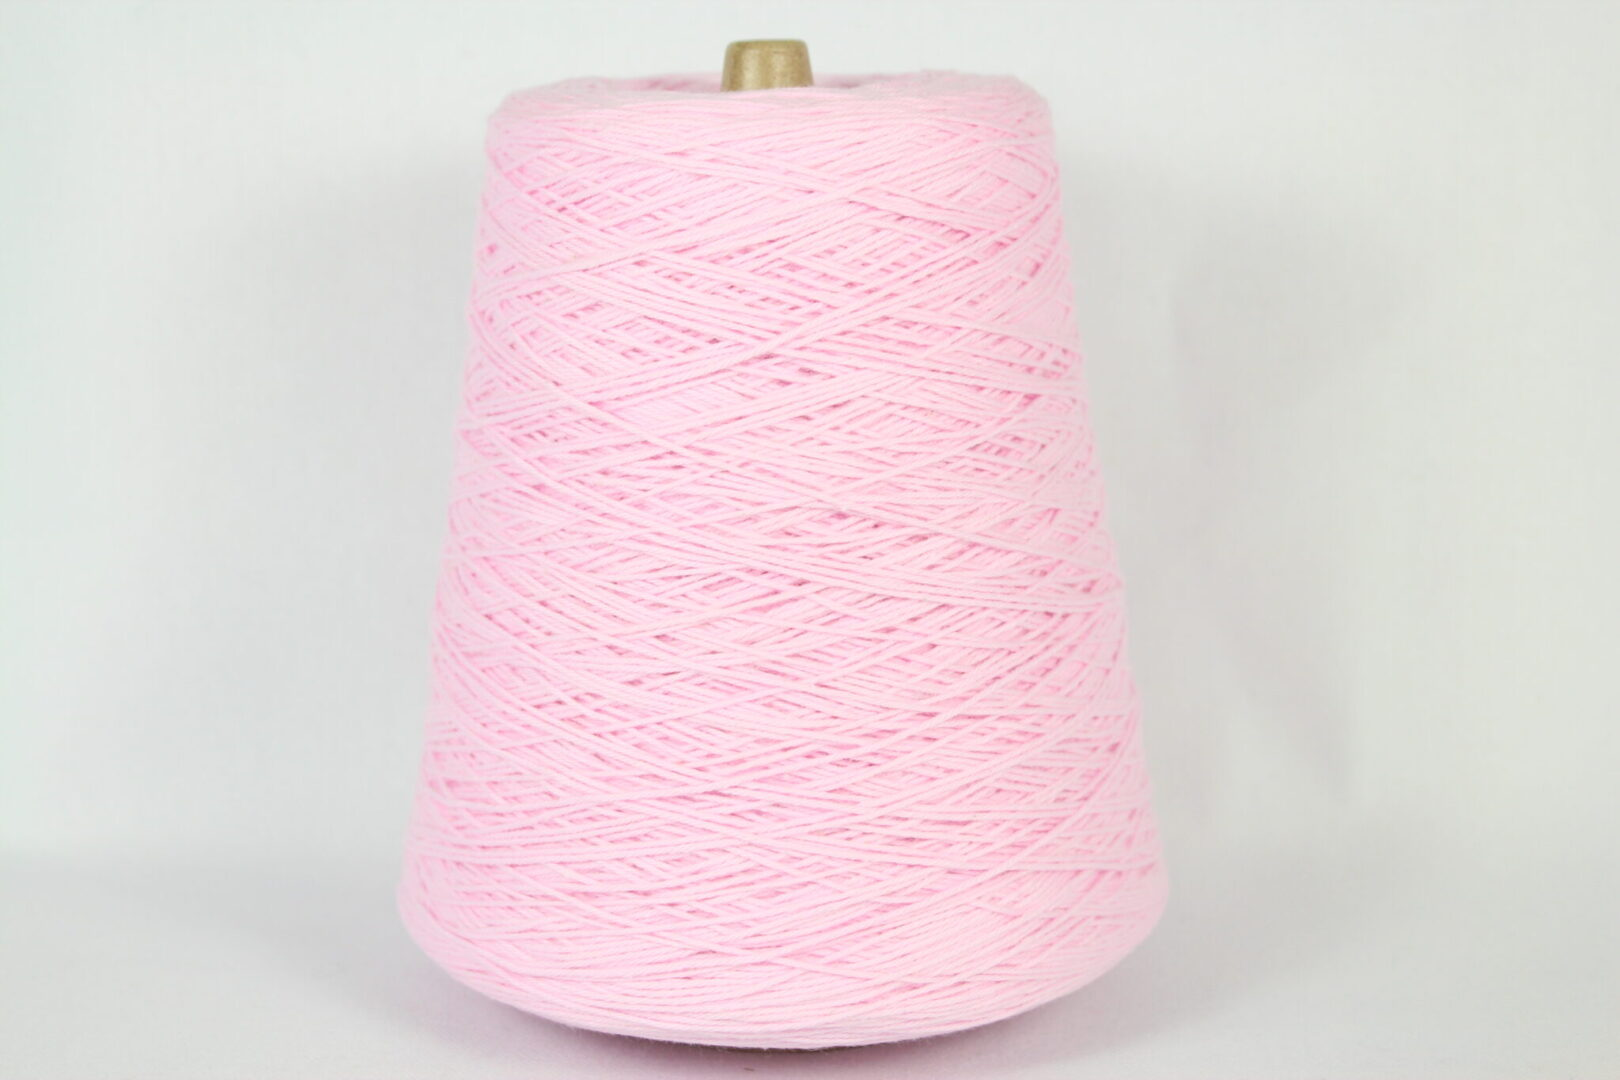 CottonTale 8 CT237 Medium Pink (New Color)